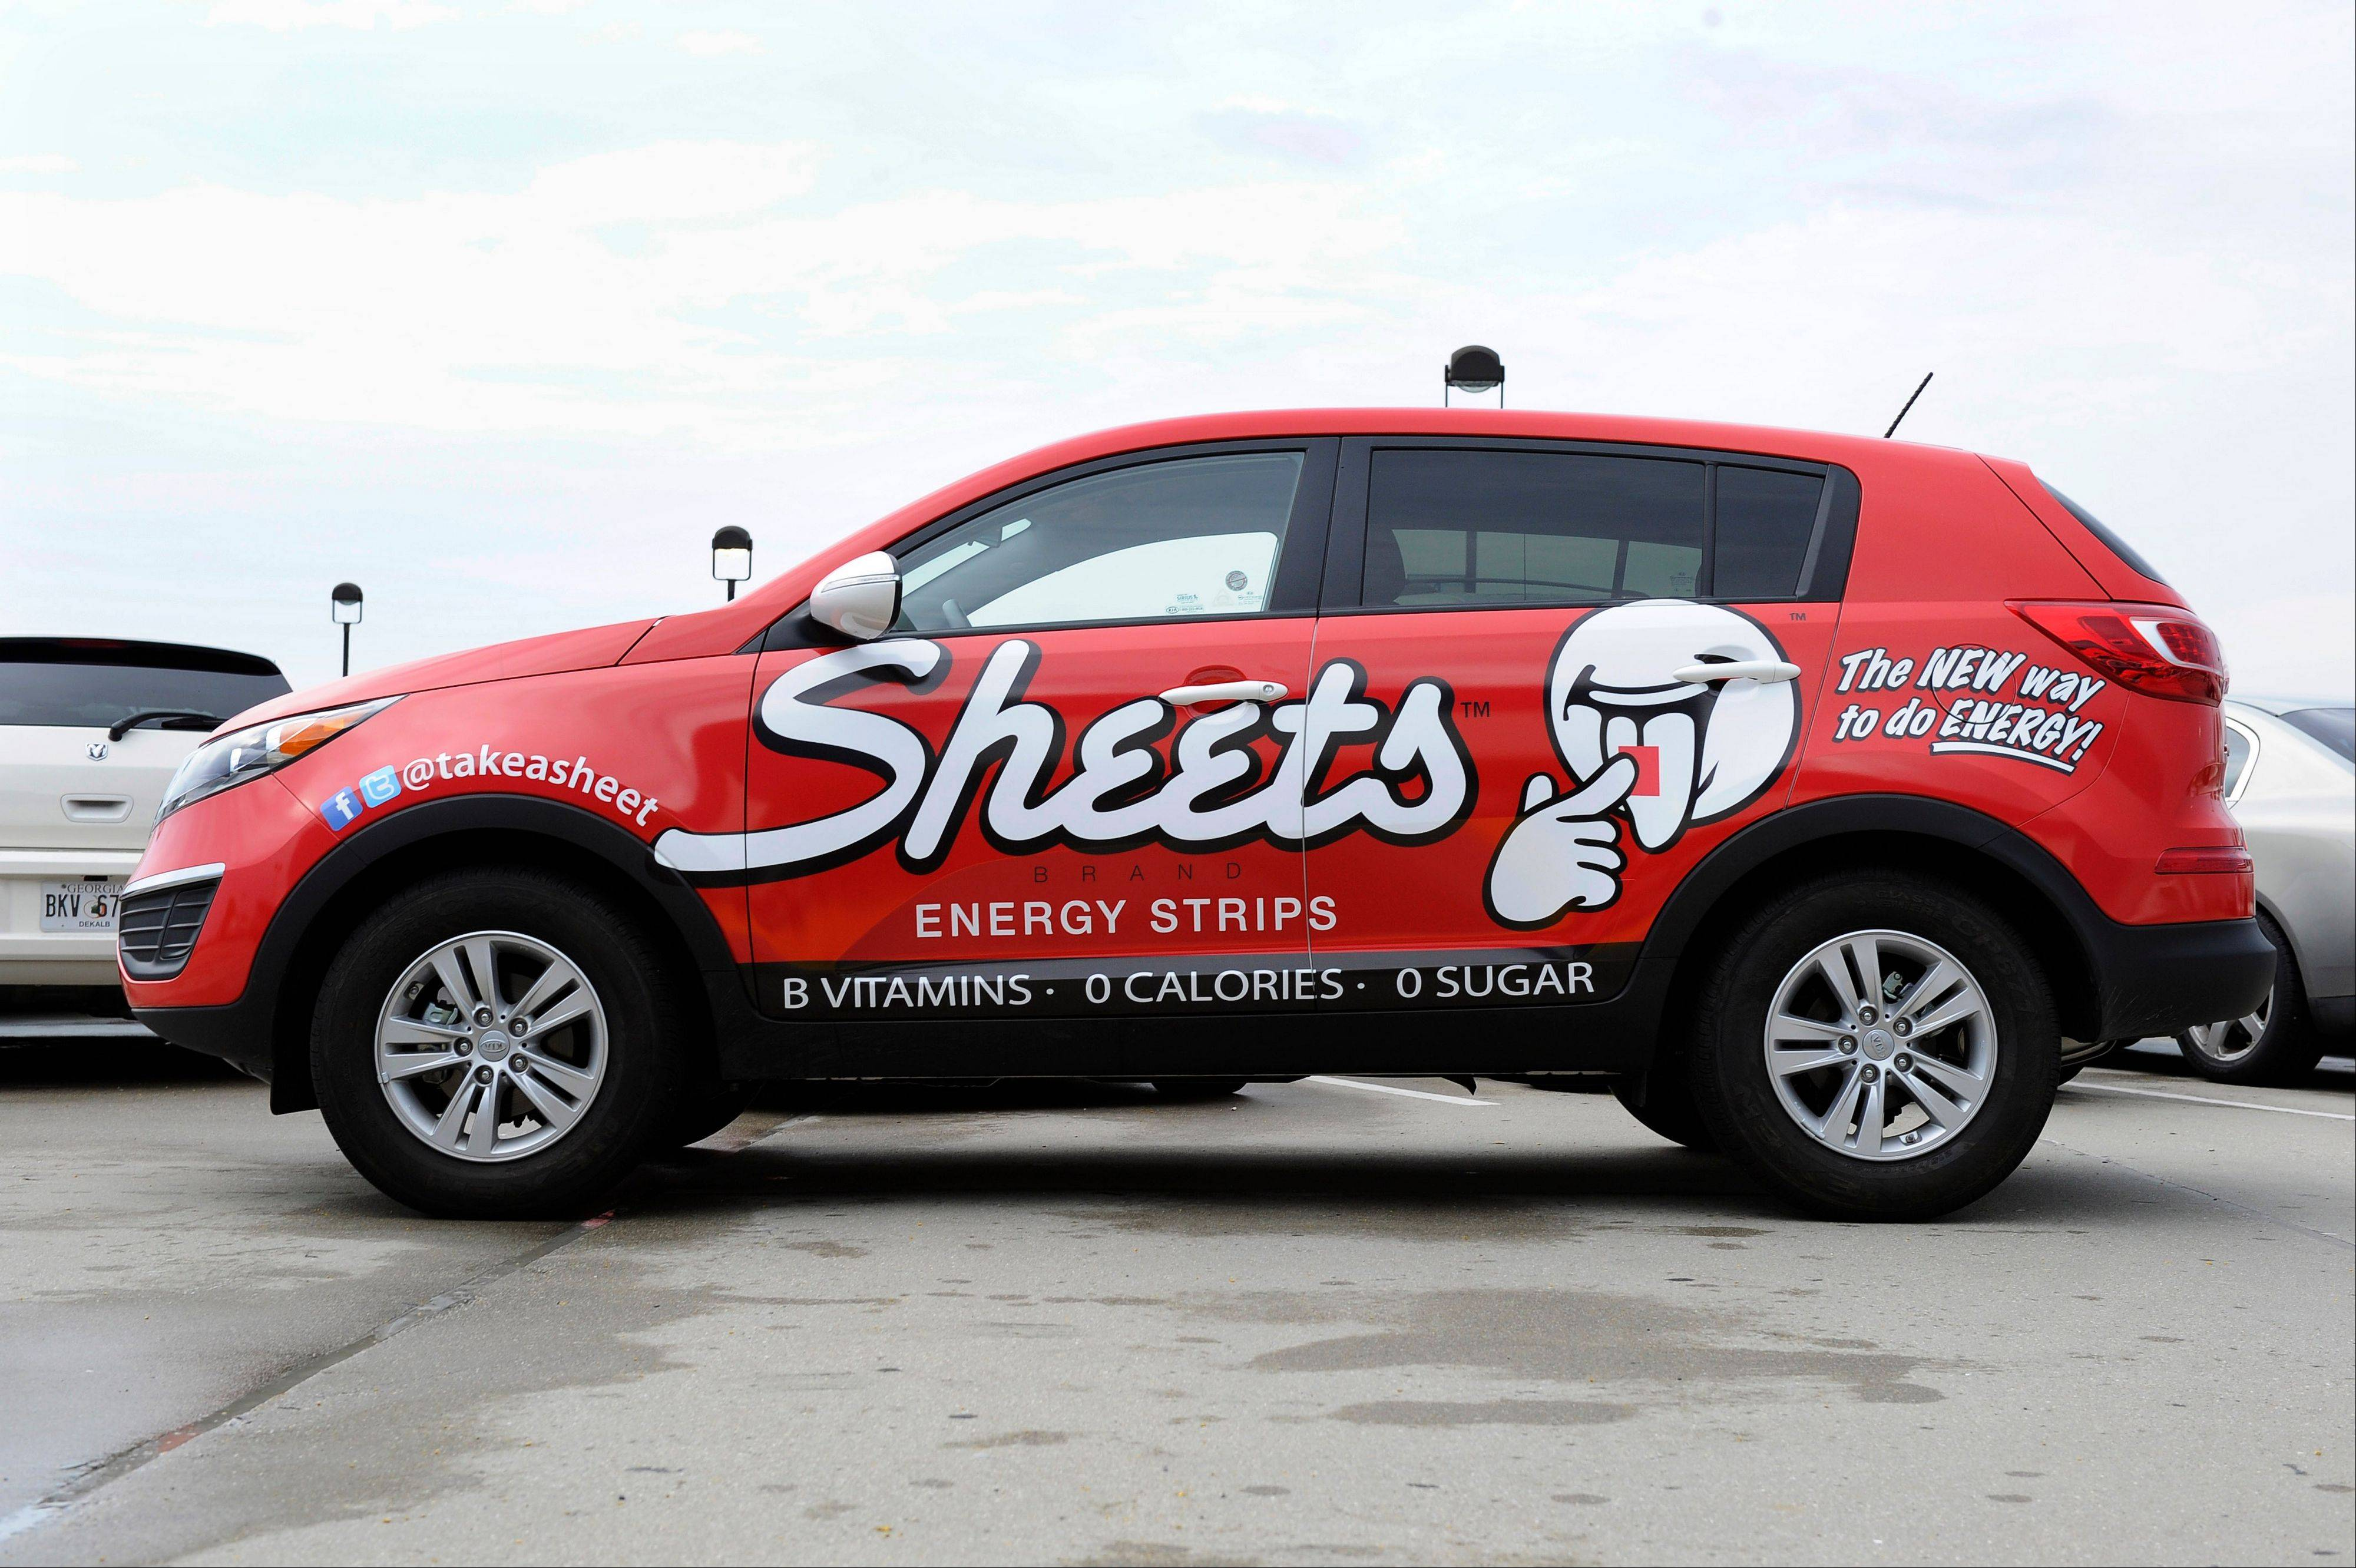 Some Budget rental cars are outfitted with ads for Sheets Brand Energy Strips, a product launched earlier this summer.